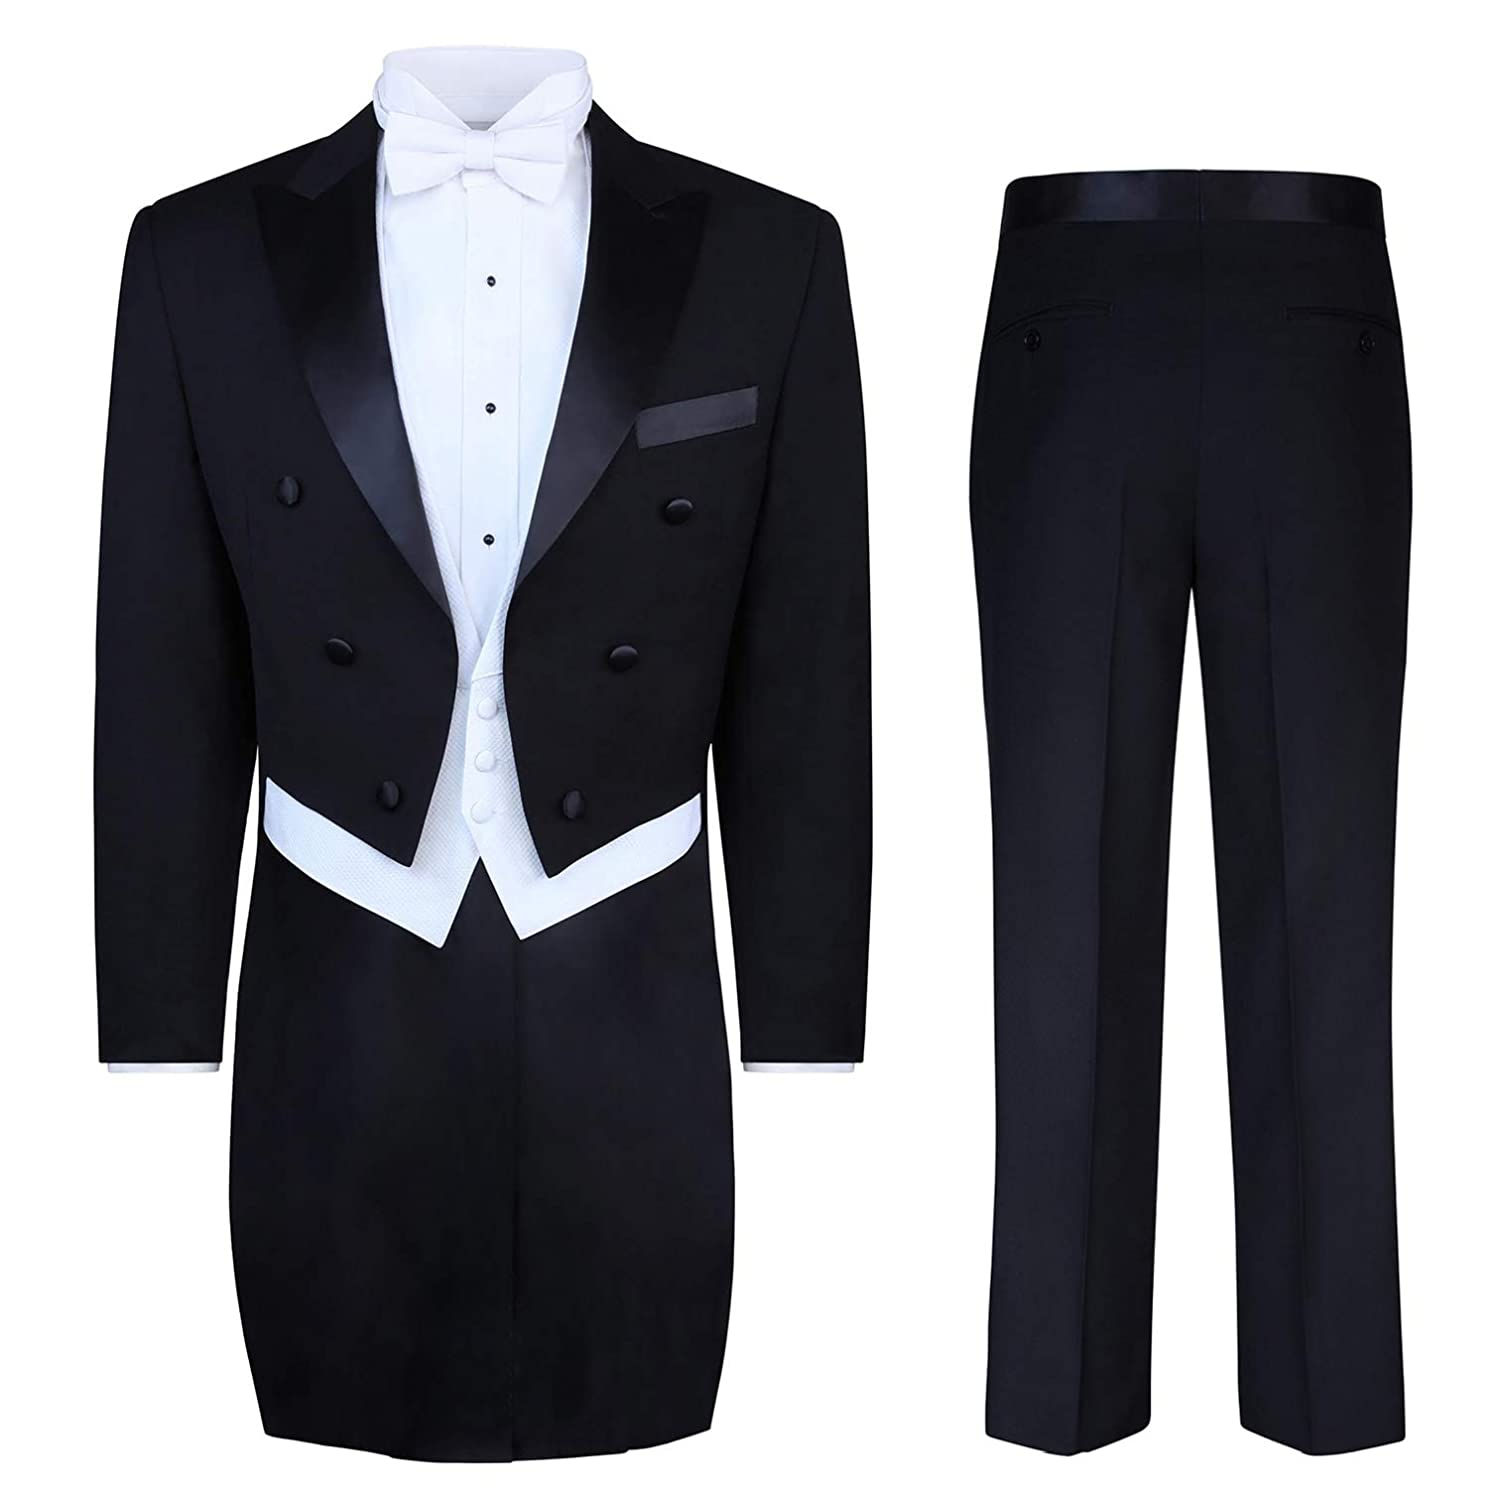 a few days away hot-selling discount exceptional range of styles and colors Men's Tuxedo Tails - Tailcoat and Trousers Available in Black or White